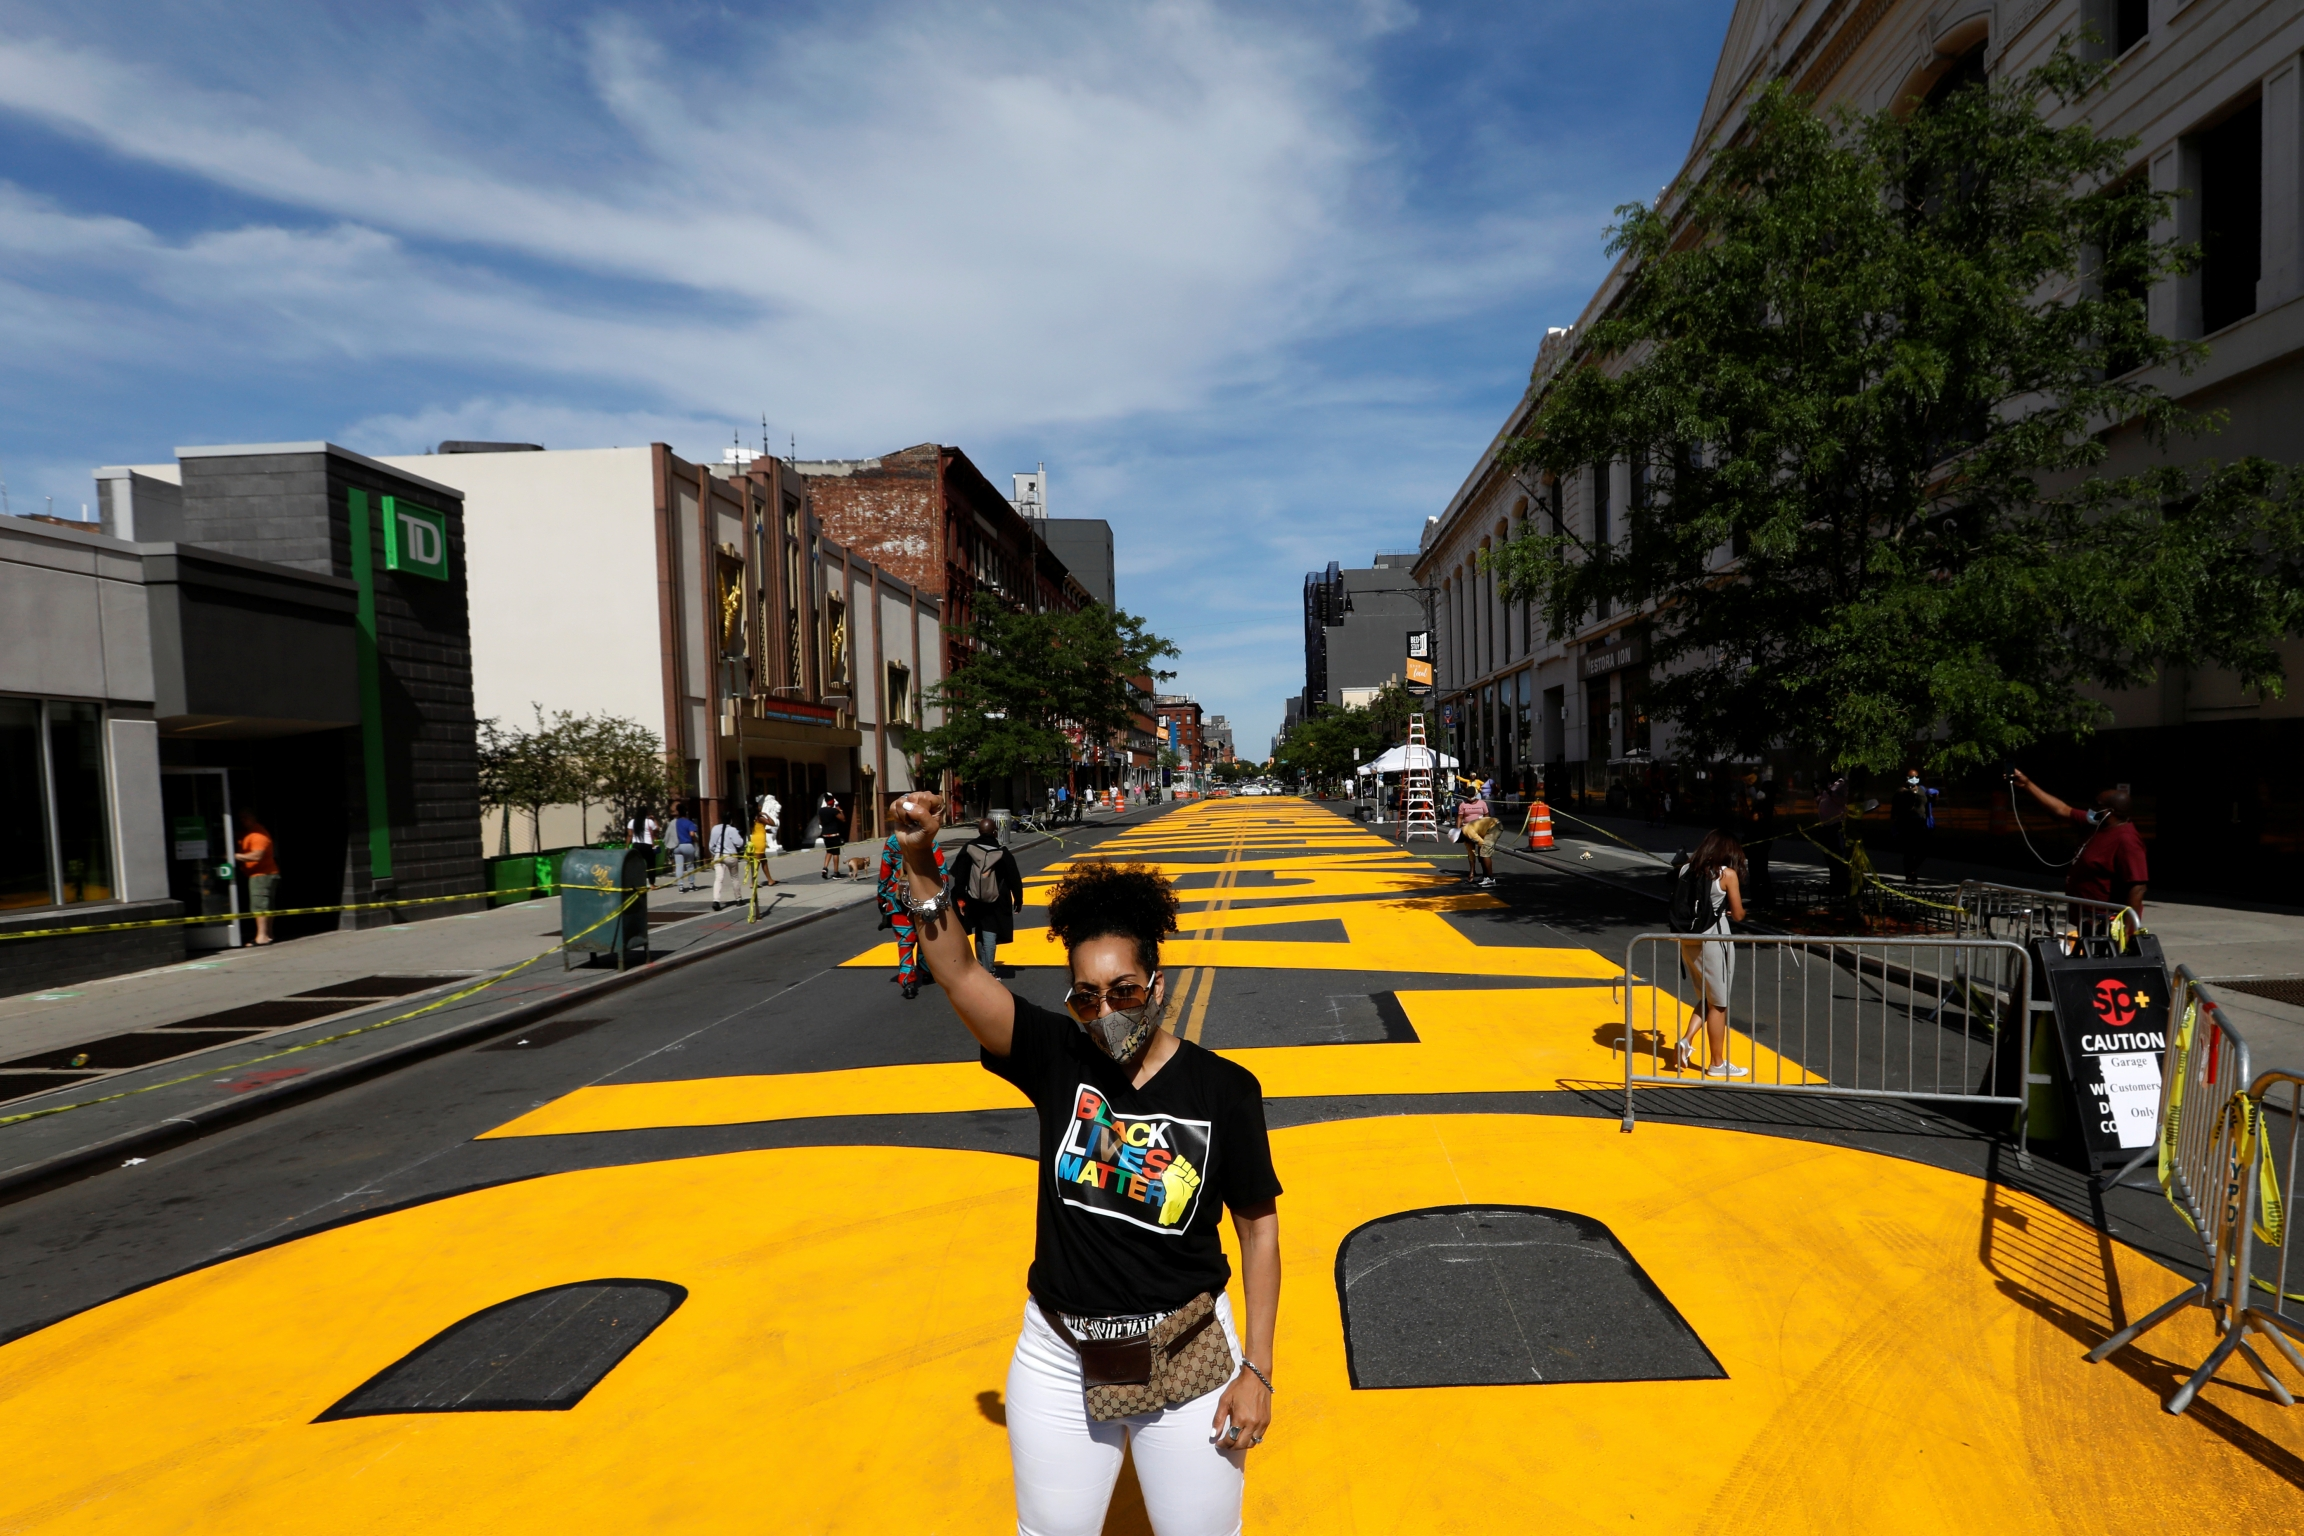 A woman poses in front of a Black Lives Matter mural on the street as a protest against racial inequality in the aftermath of the death in Minneapolis police custody of George Floyd, in Brooklyn, New York, June 16, 2020.